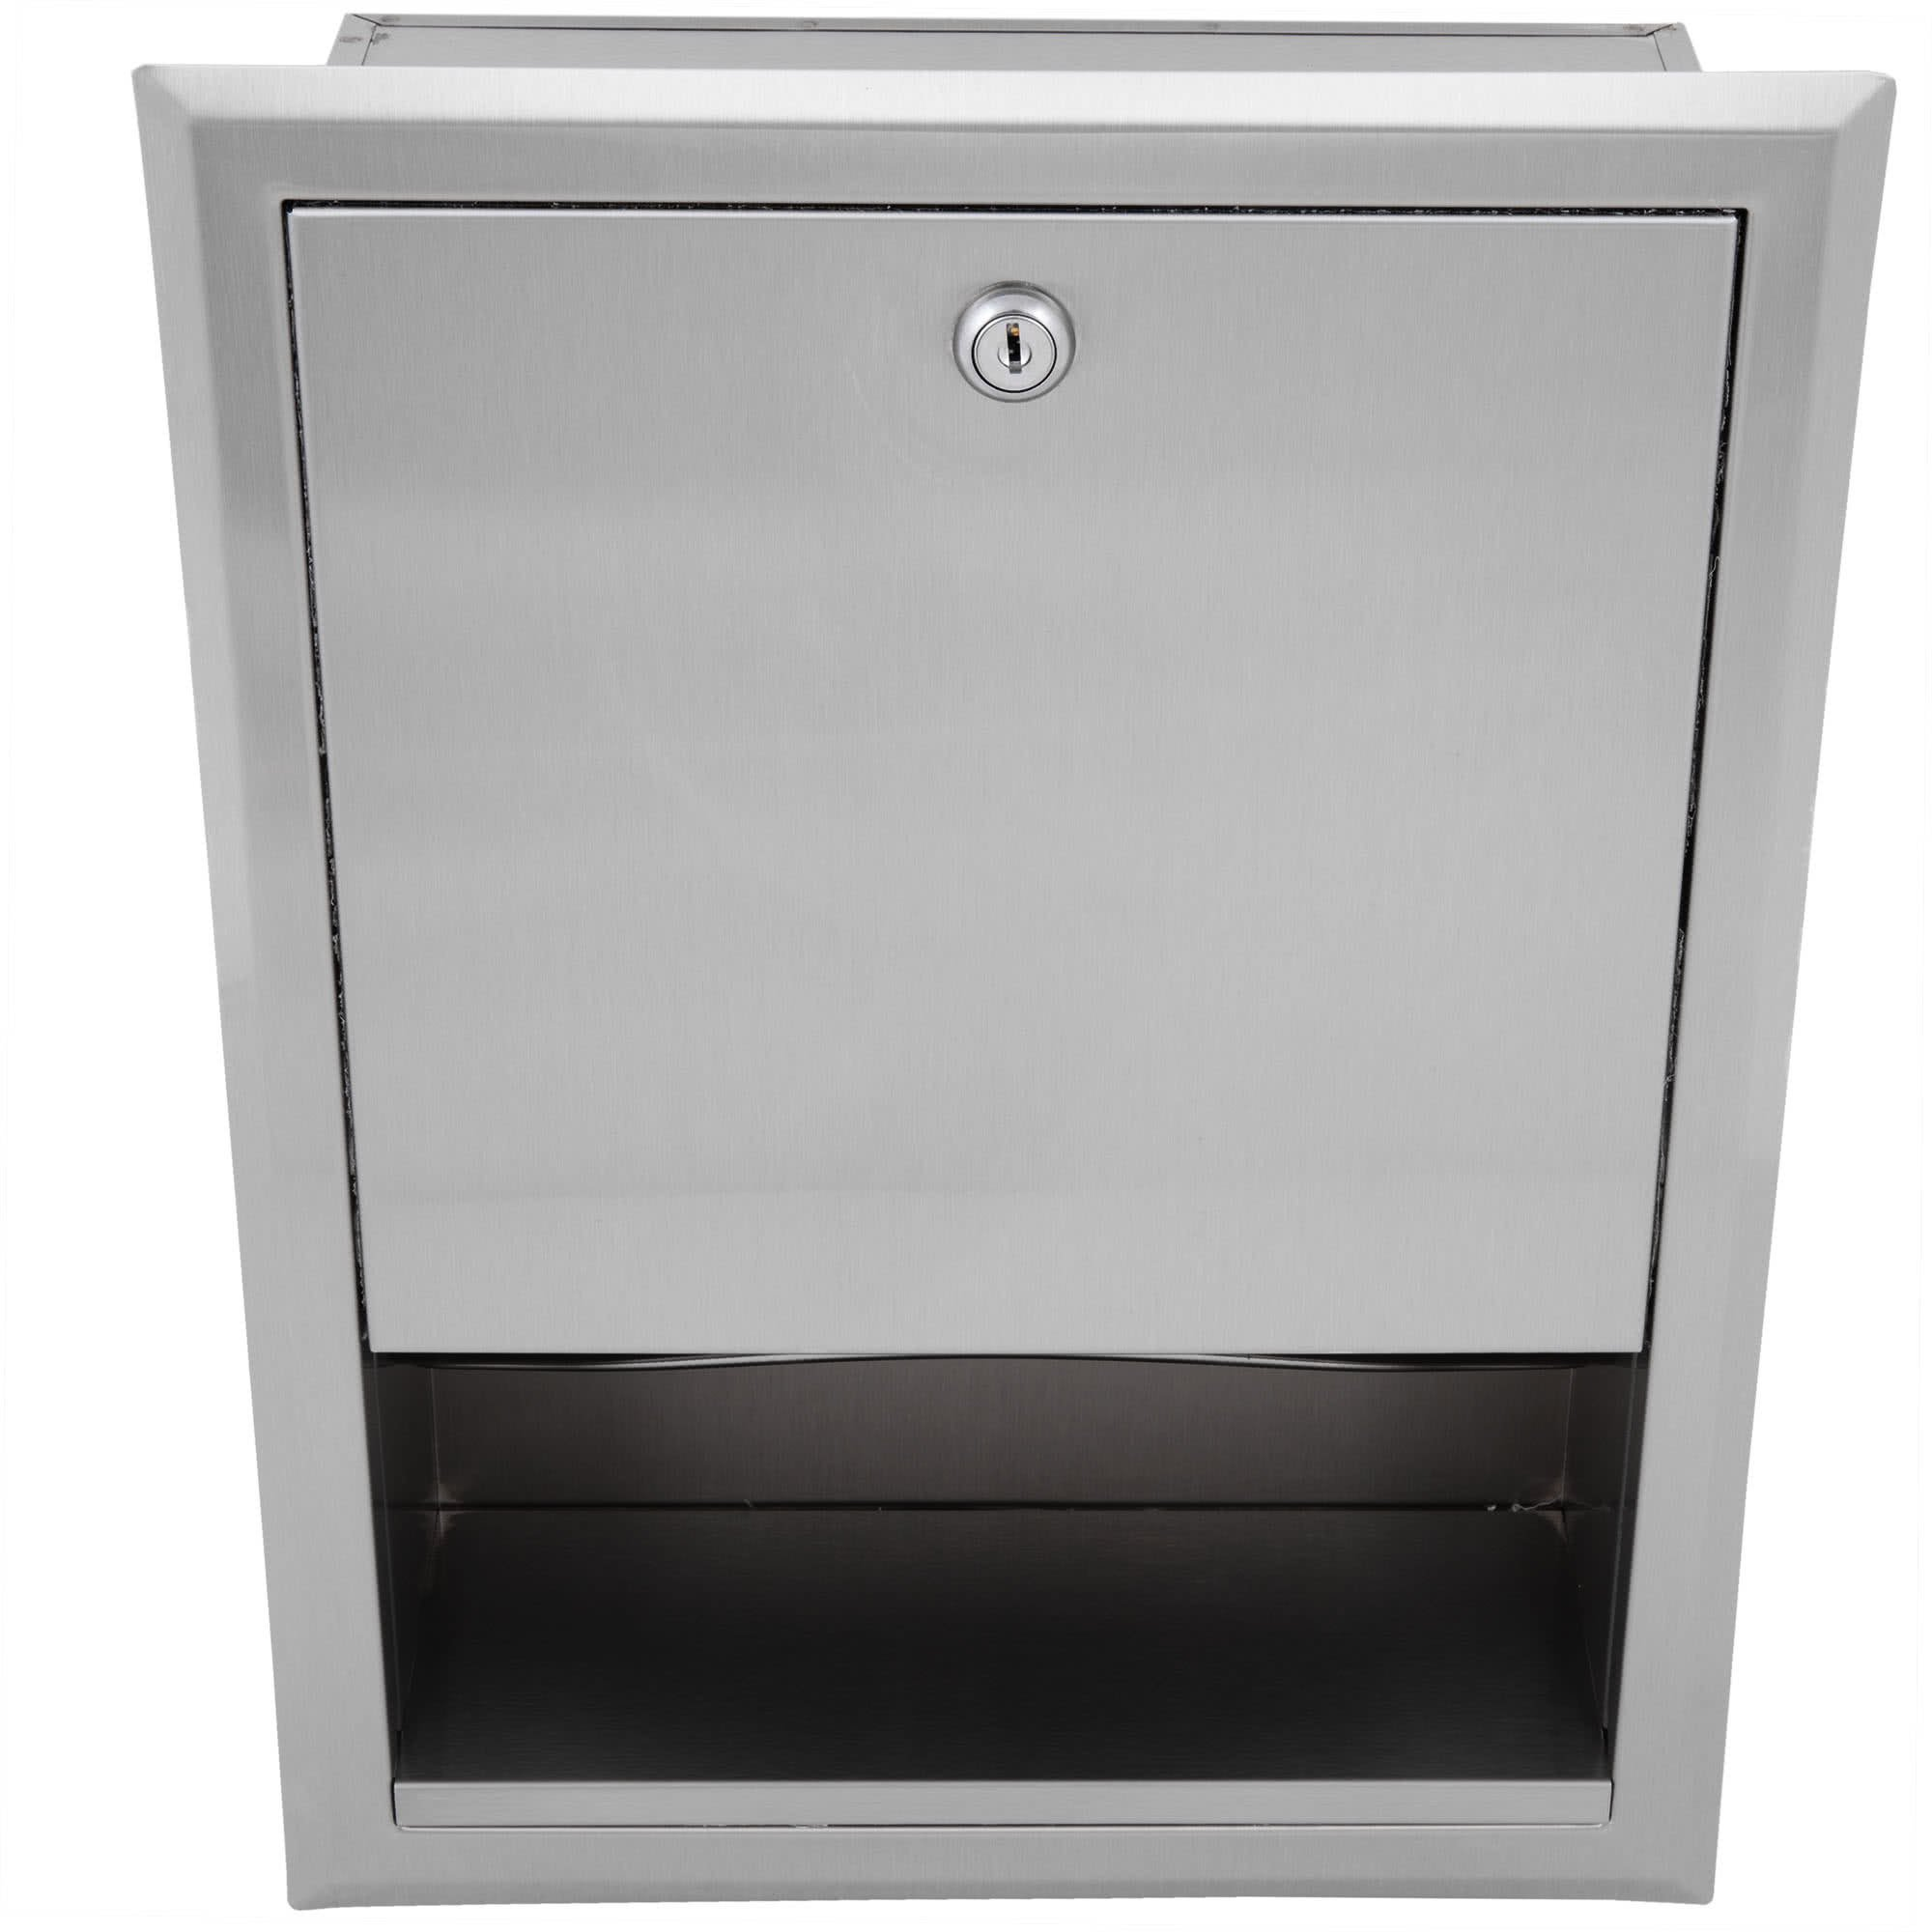 B-359 C Fold or Multifold Recessed Paper Towel Dispenser By TableTop King